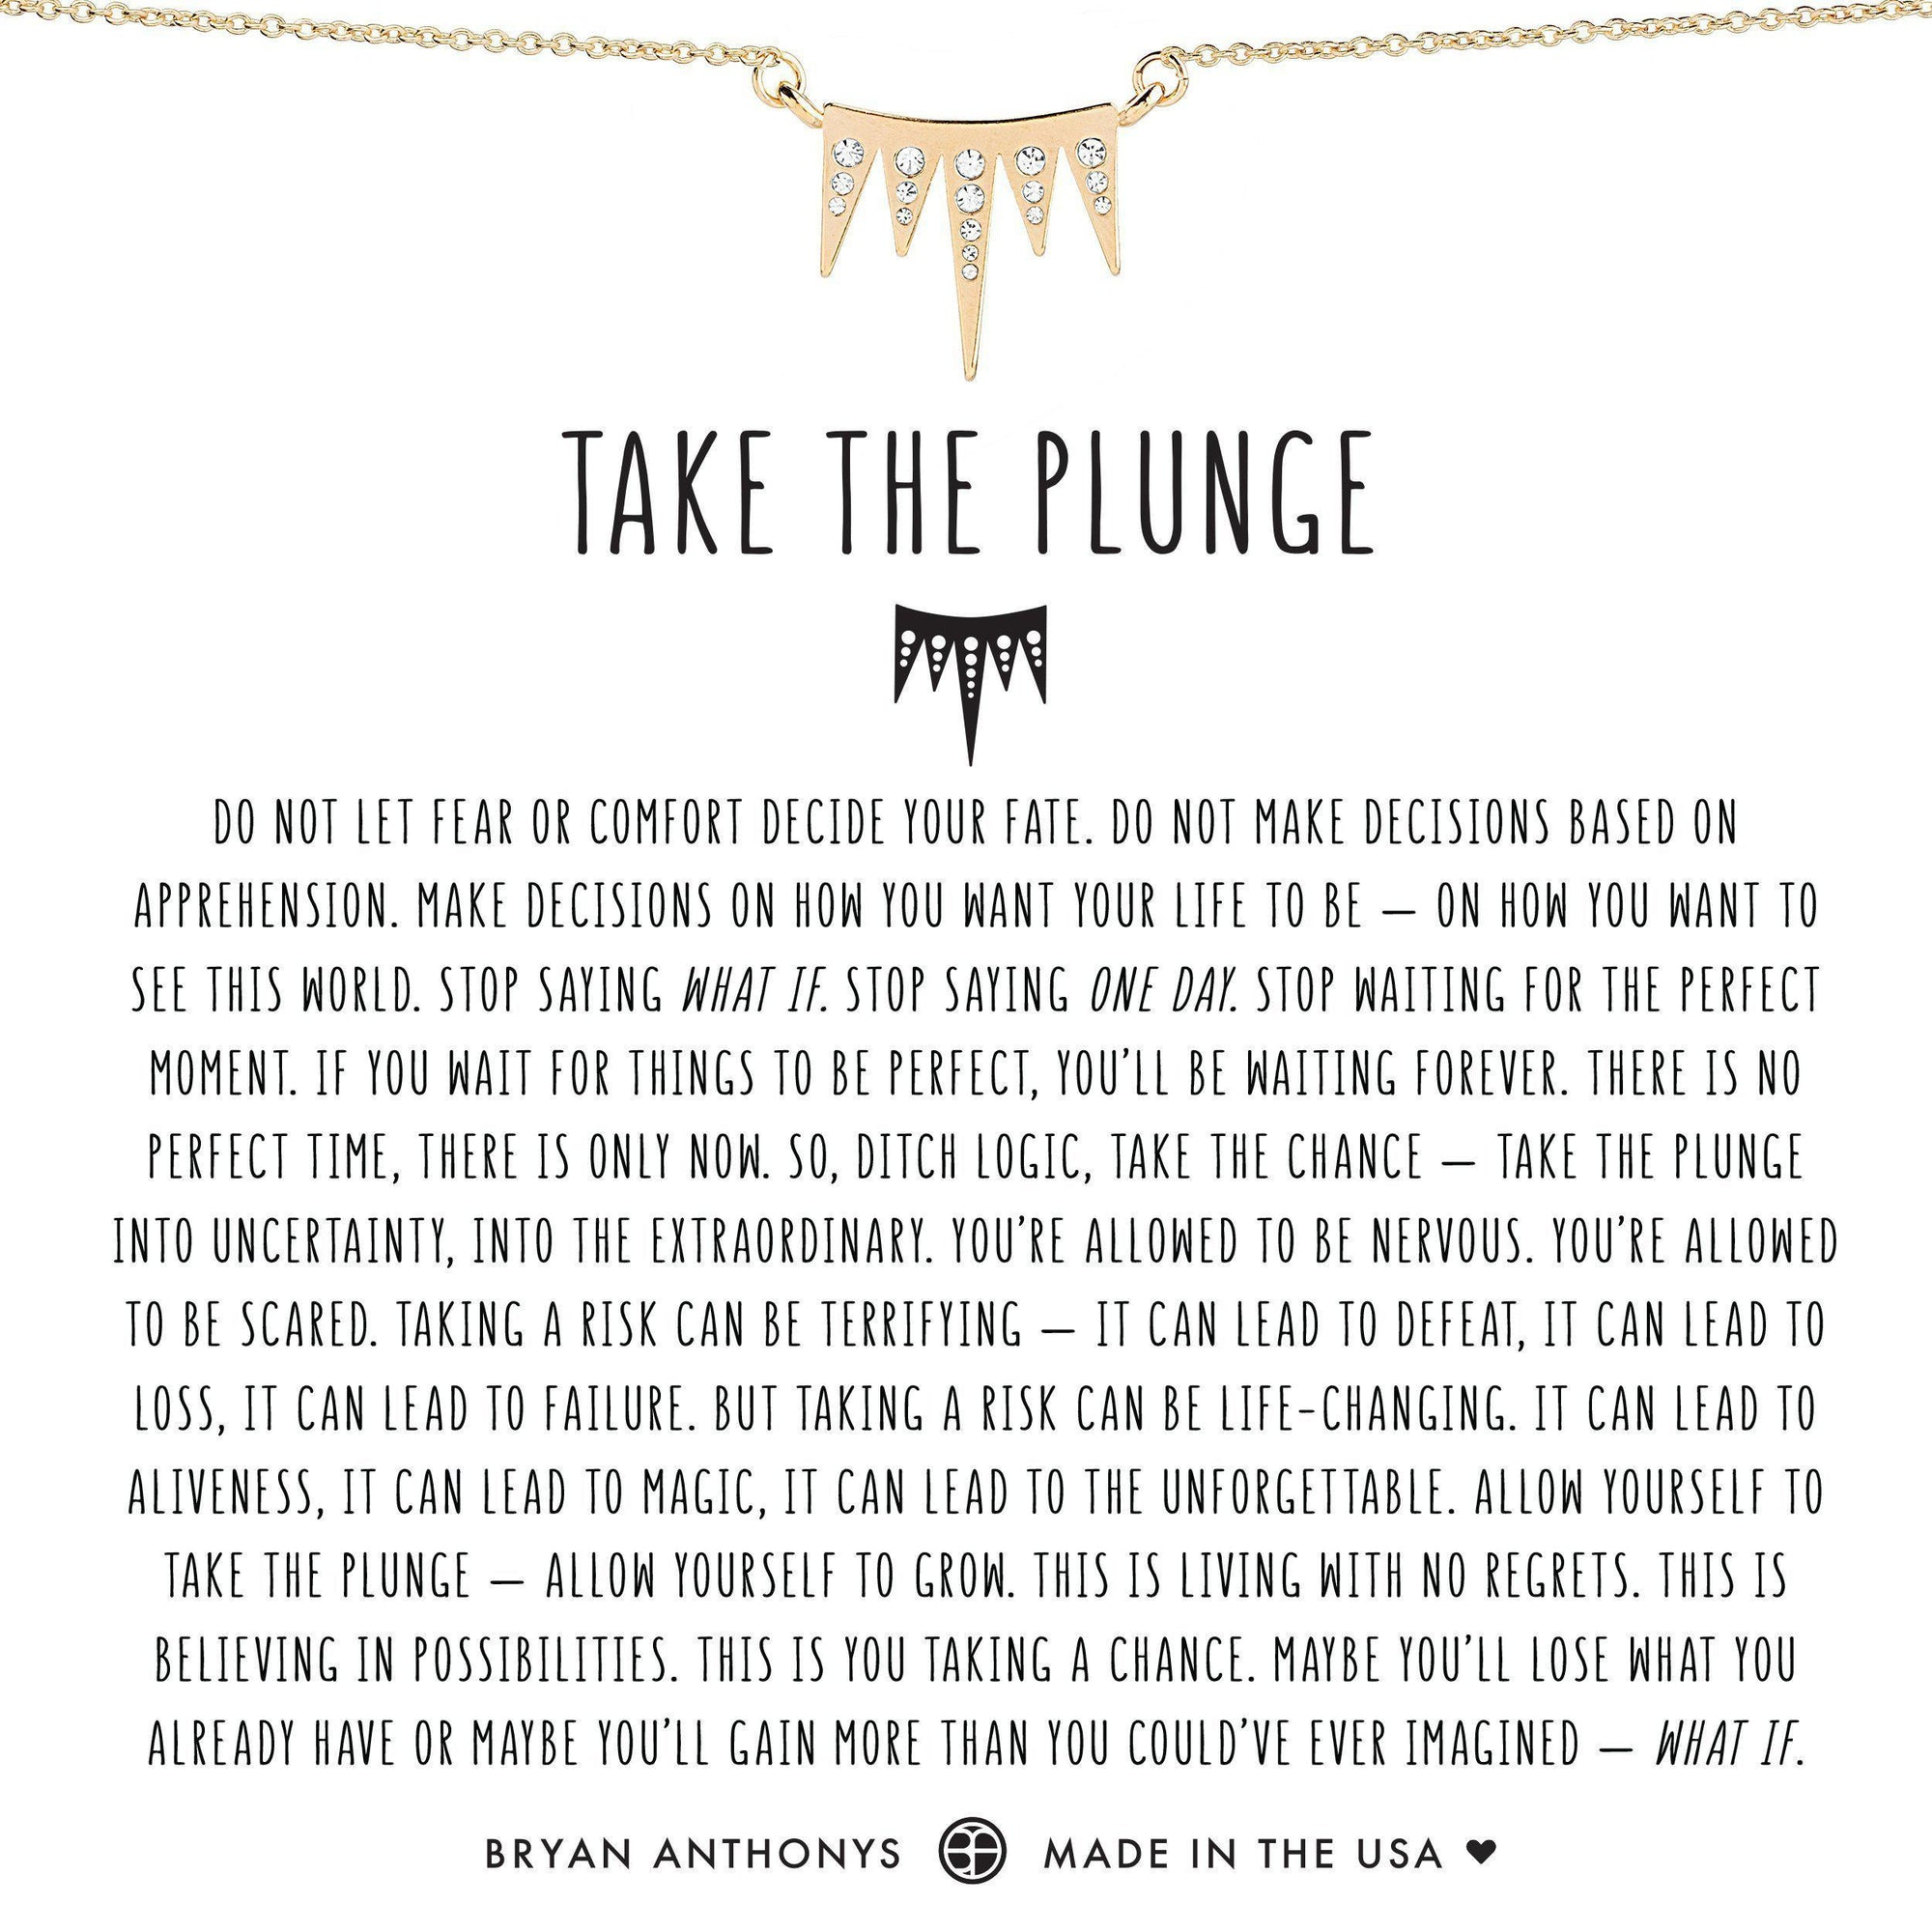 Take The Plunge-Bryan Anthony Necklace-Bryan Anthonys-Gold-Lizzy's Pink Boutique